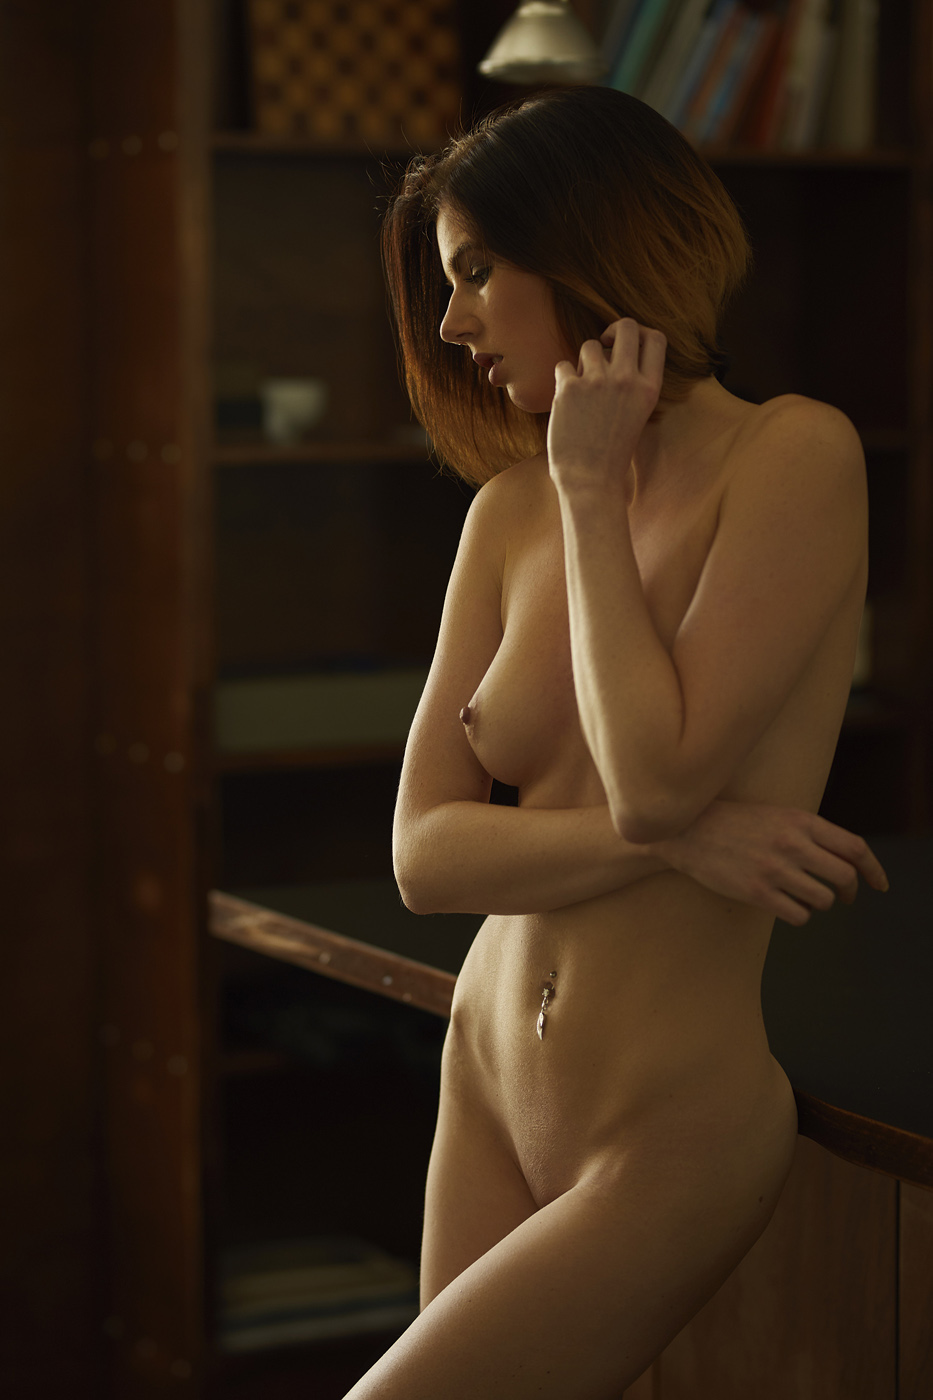 Nude Model Ivonne Photographed By Benedikt Schmucker-7894